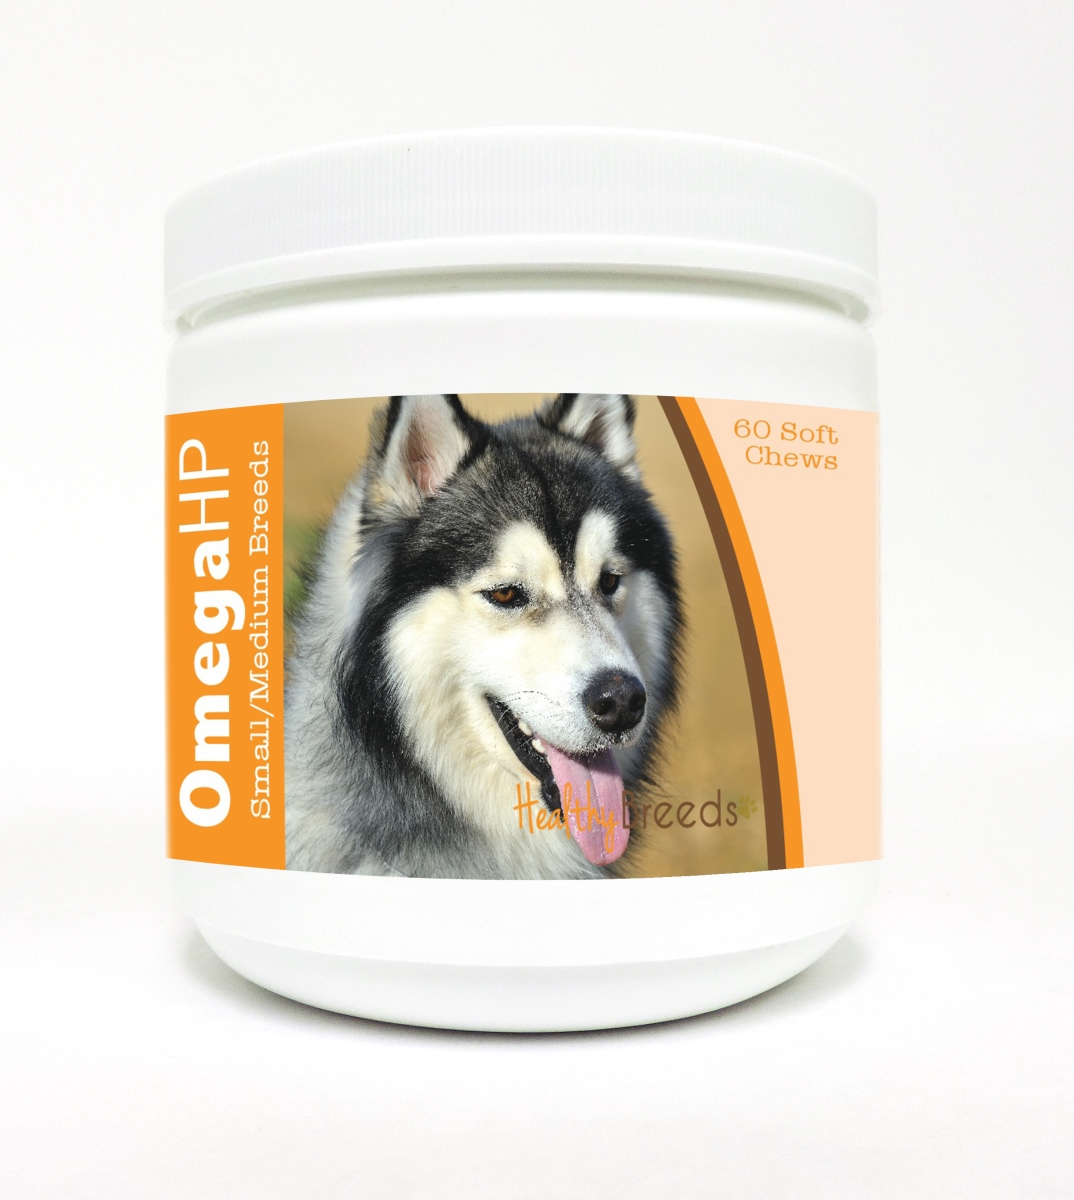 Healthy Breeds 840235114482 Omega-3 Fatty Acids Skin & Coat Soft Chews